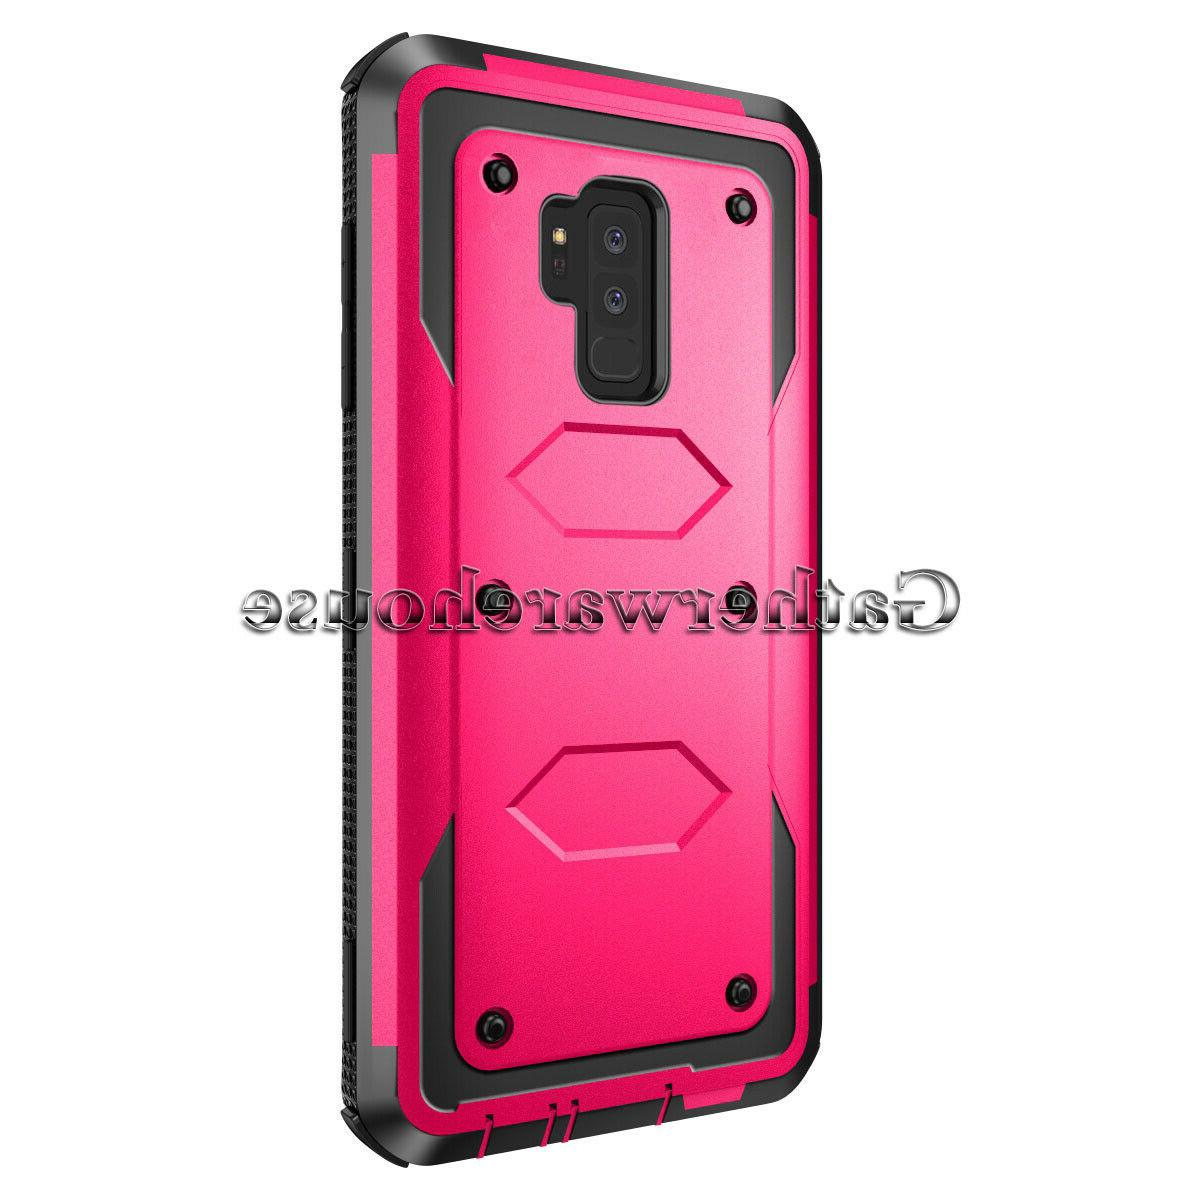 Samsung S7 S8 S9 Shockproof Rugged Case